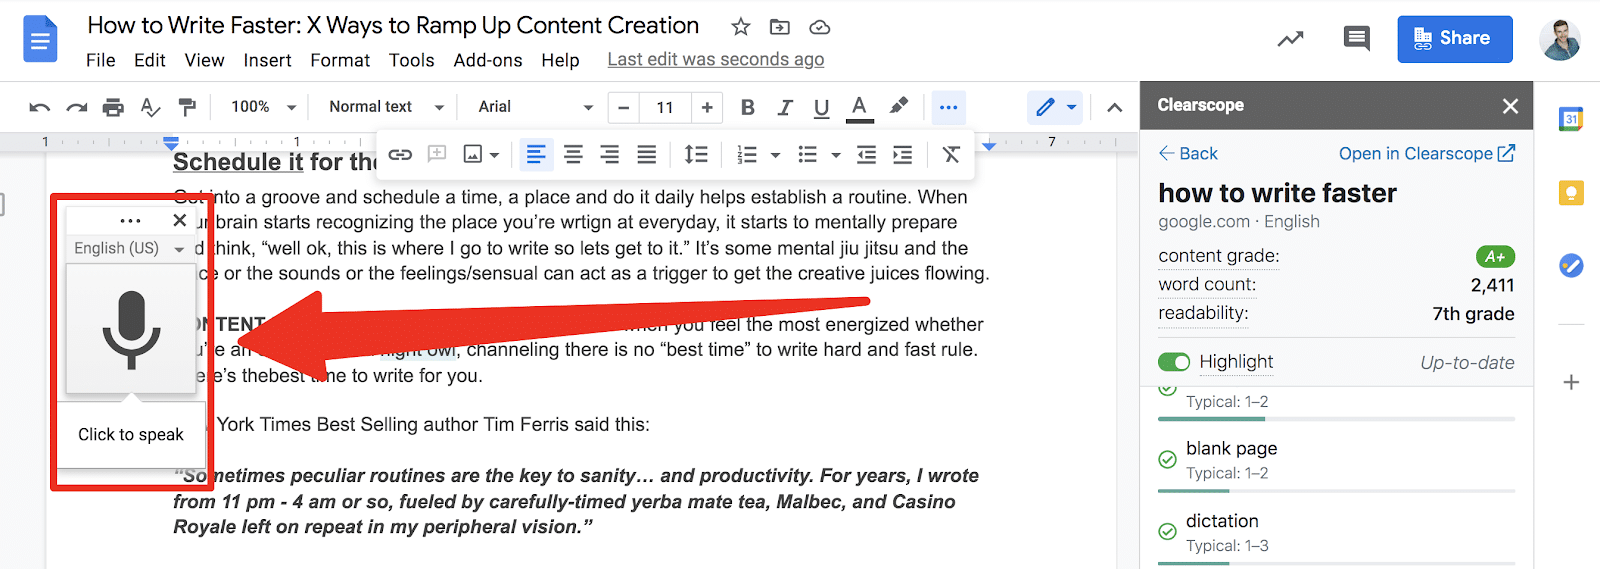 google doc voice typing how to write faster example